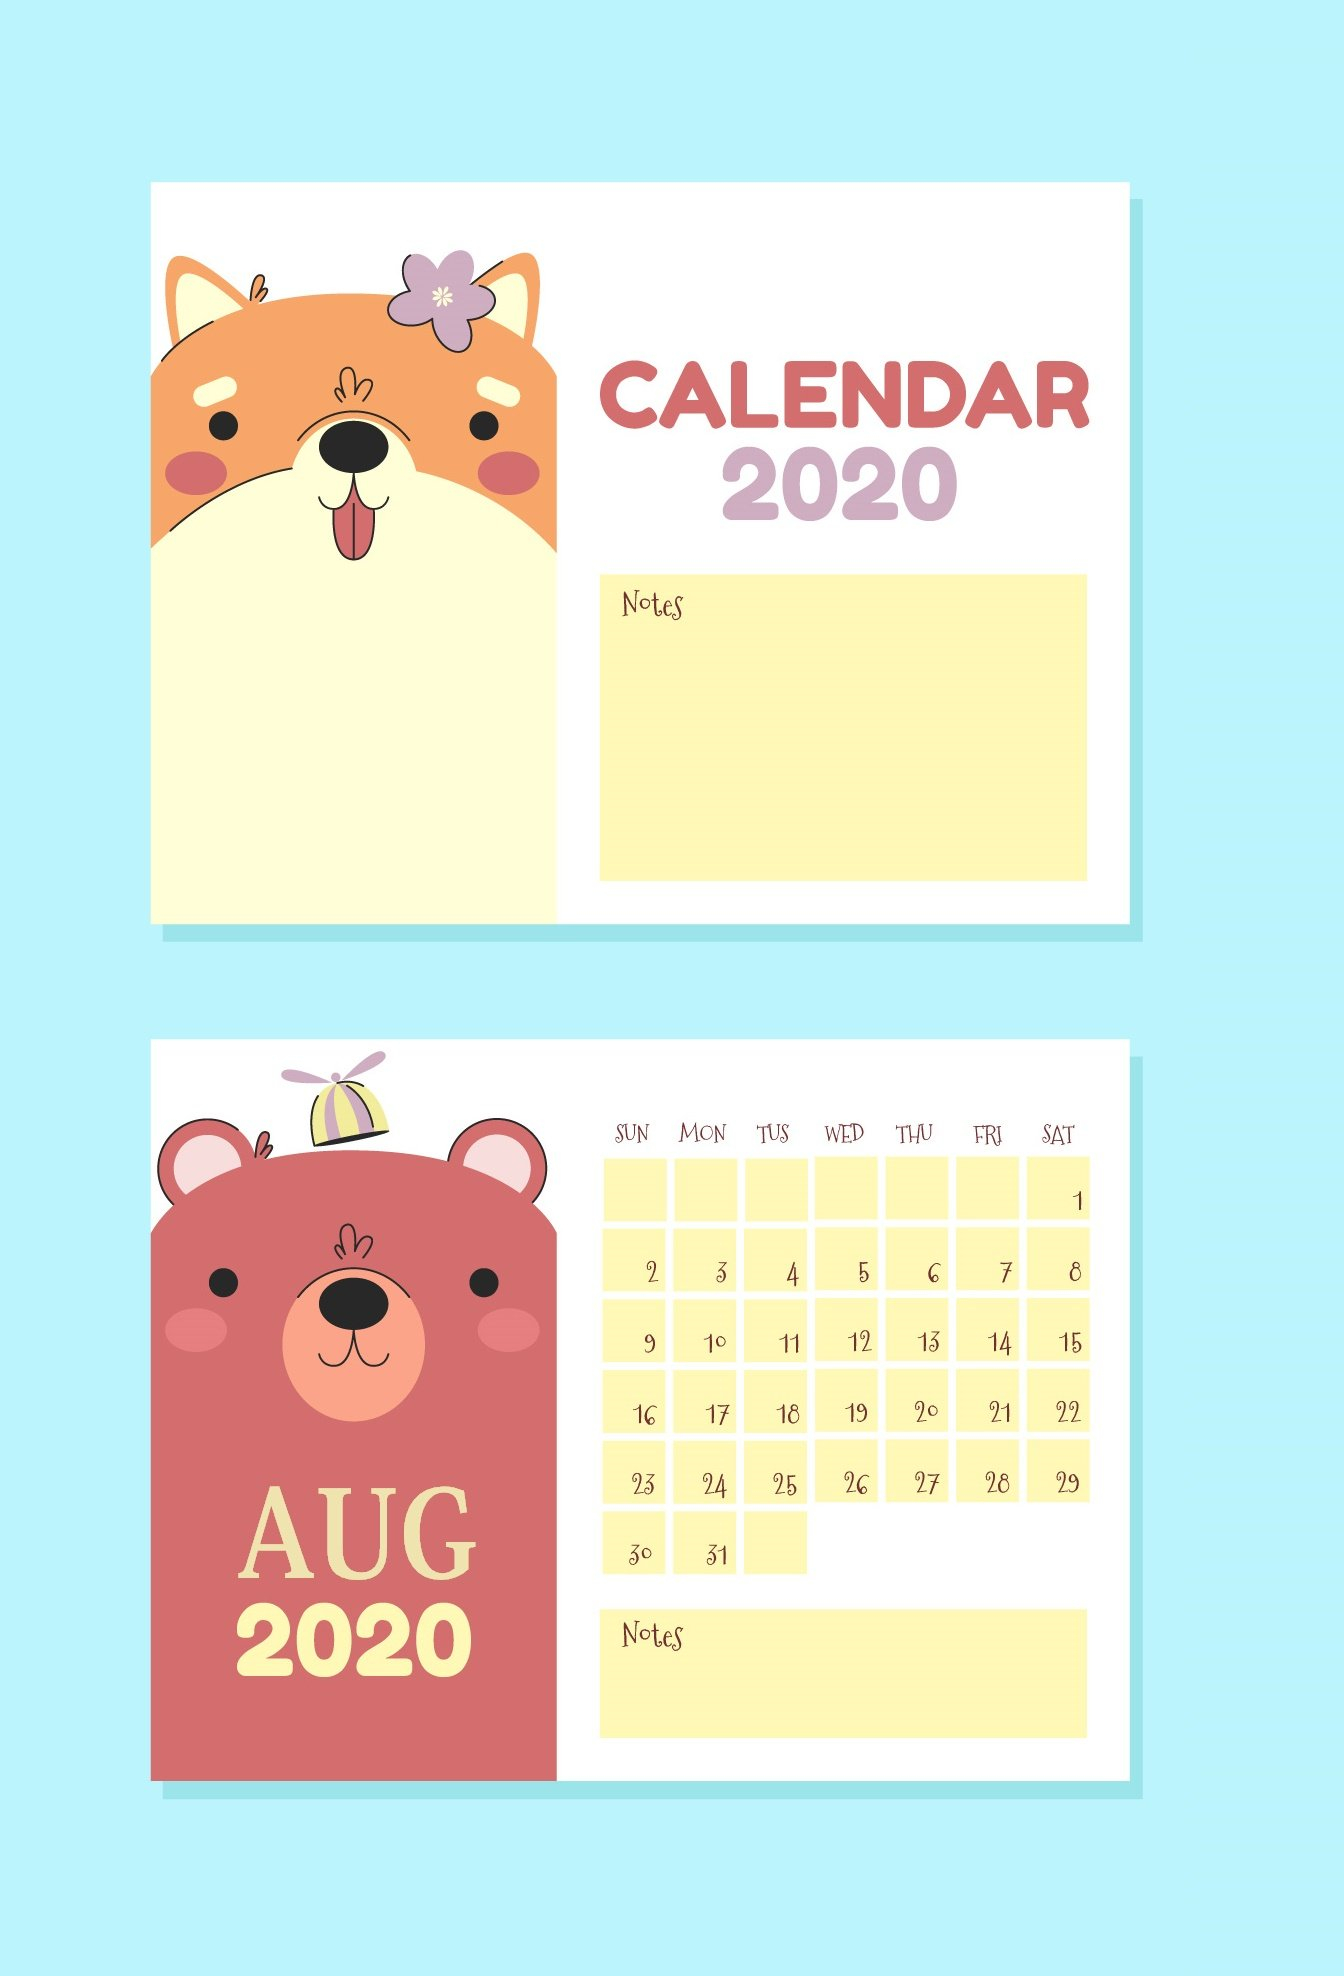 Free August 2020 Wall Calendar | Calendar 2020 Free 2020 Calendar With Days Counted 1-365